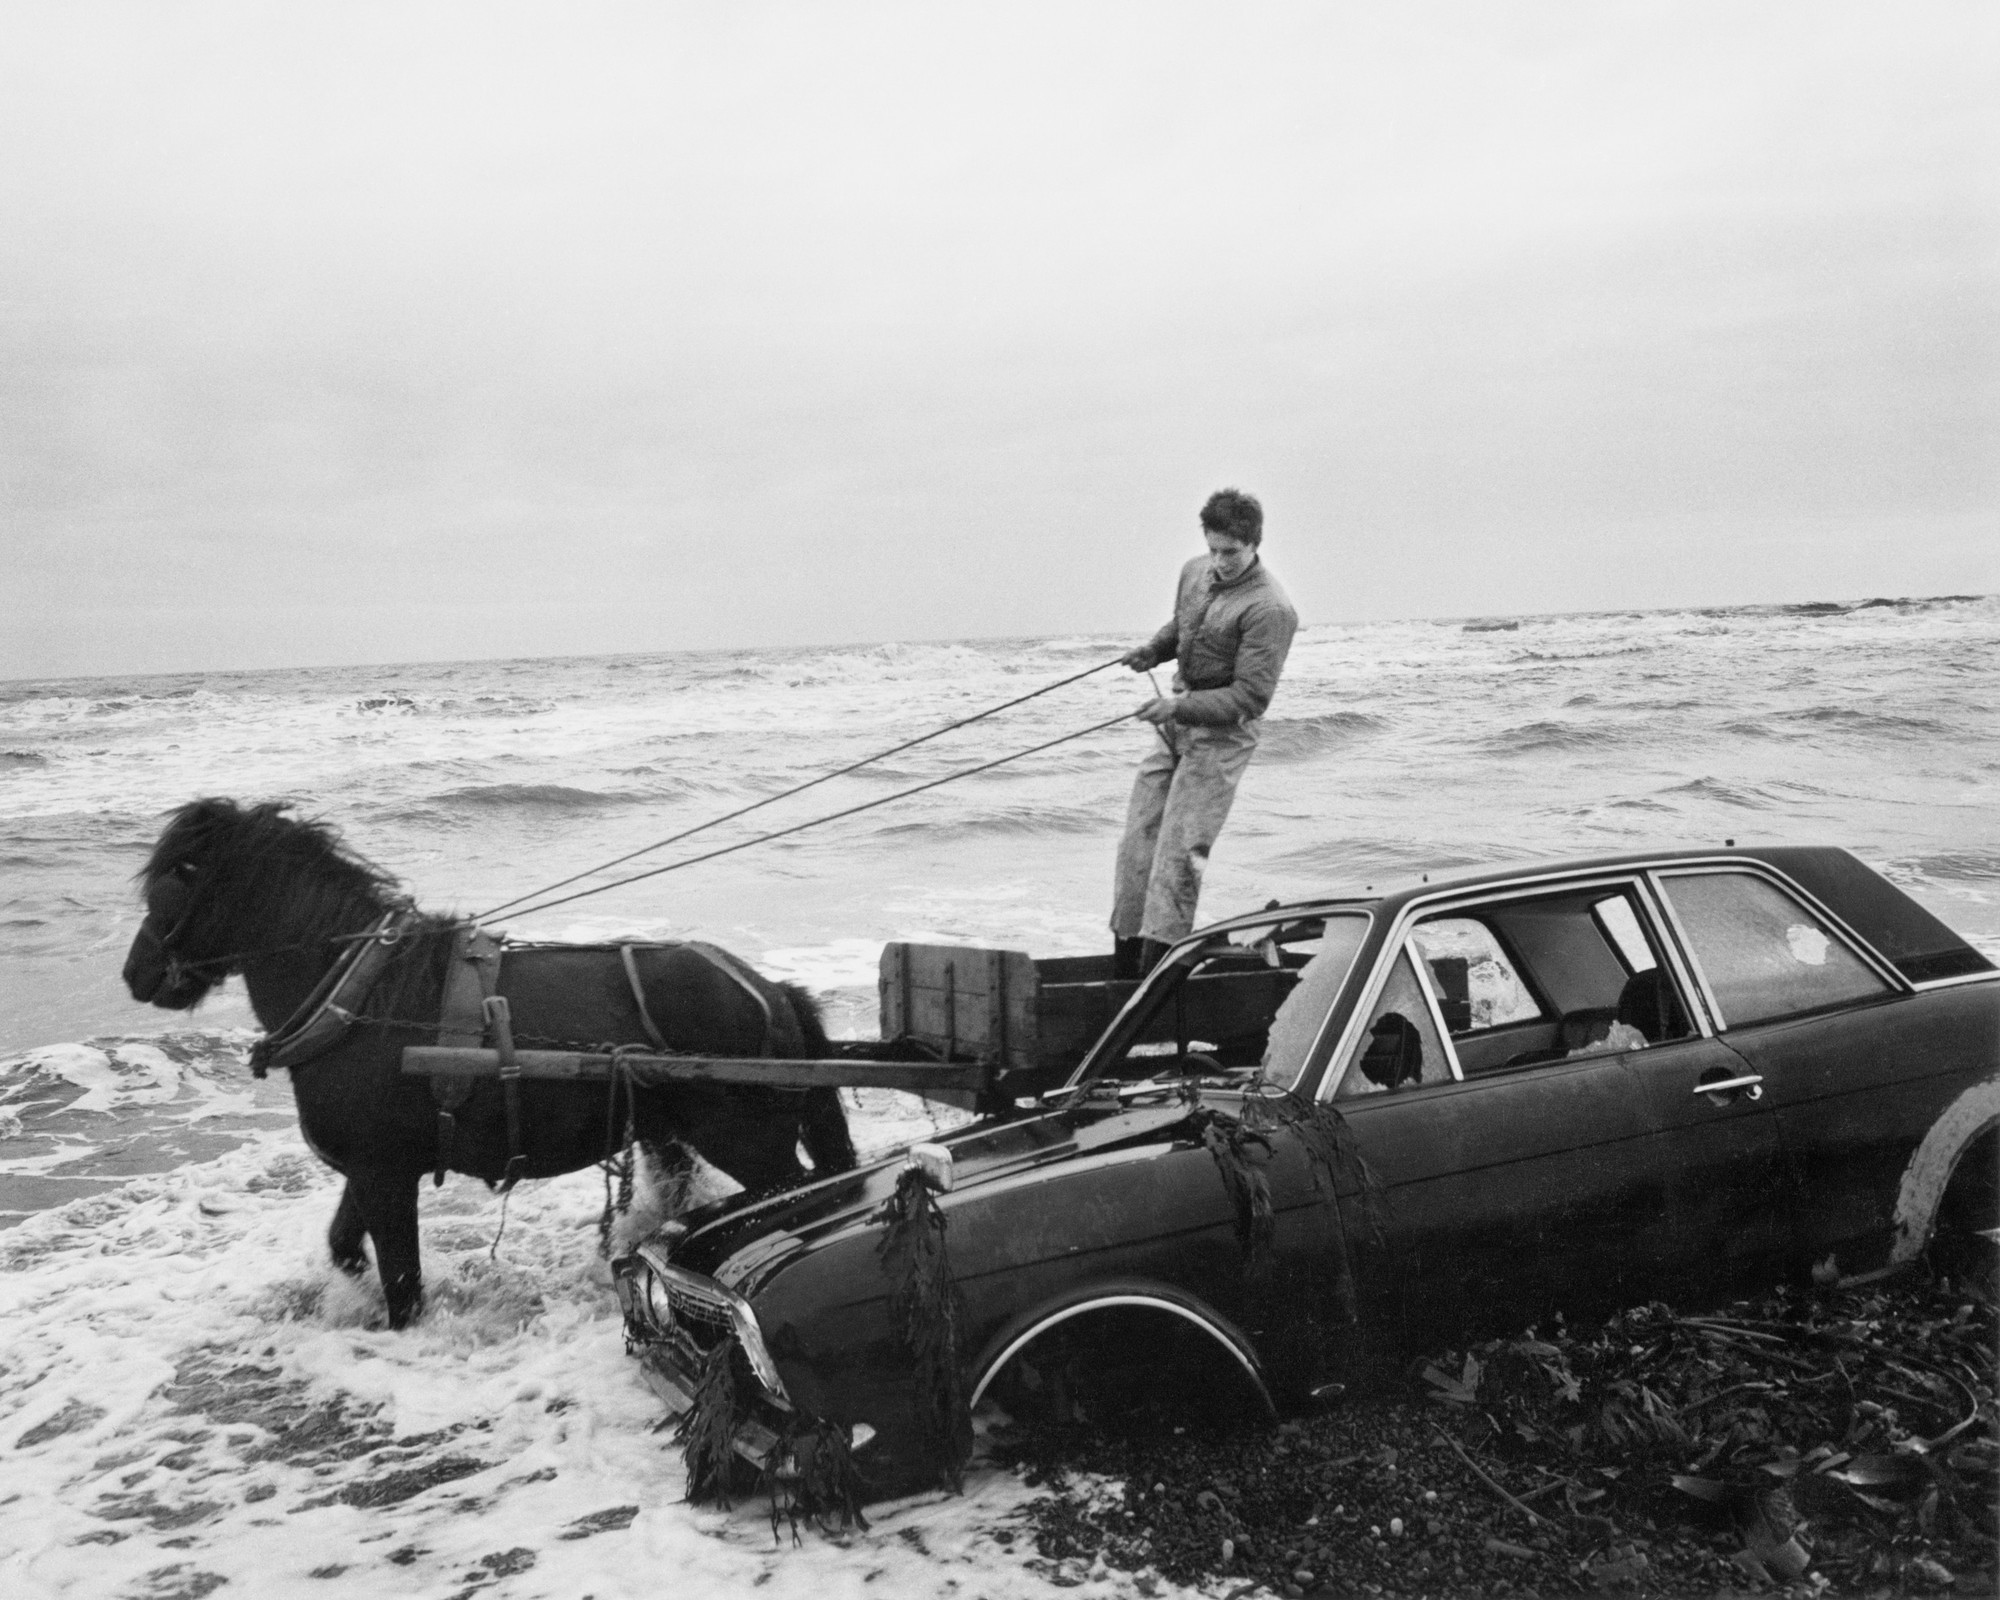 """A car dumped on the beach..."" by Chris Killiip, from 1982, at the Getty Museum."